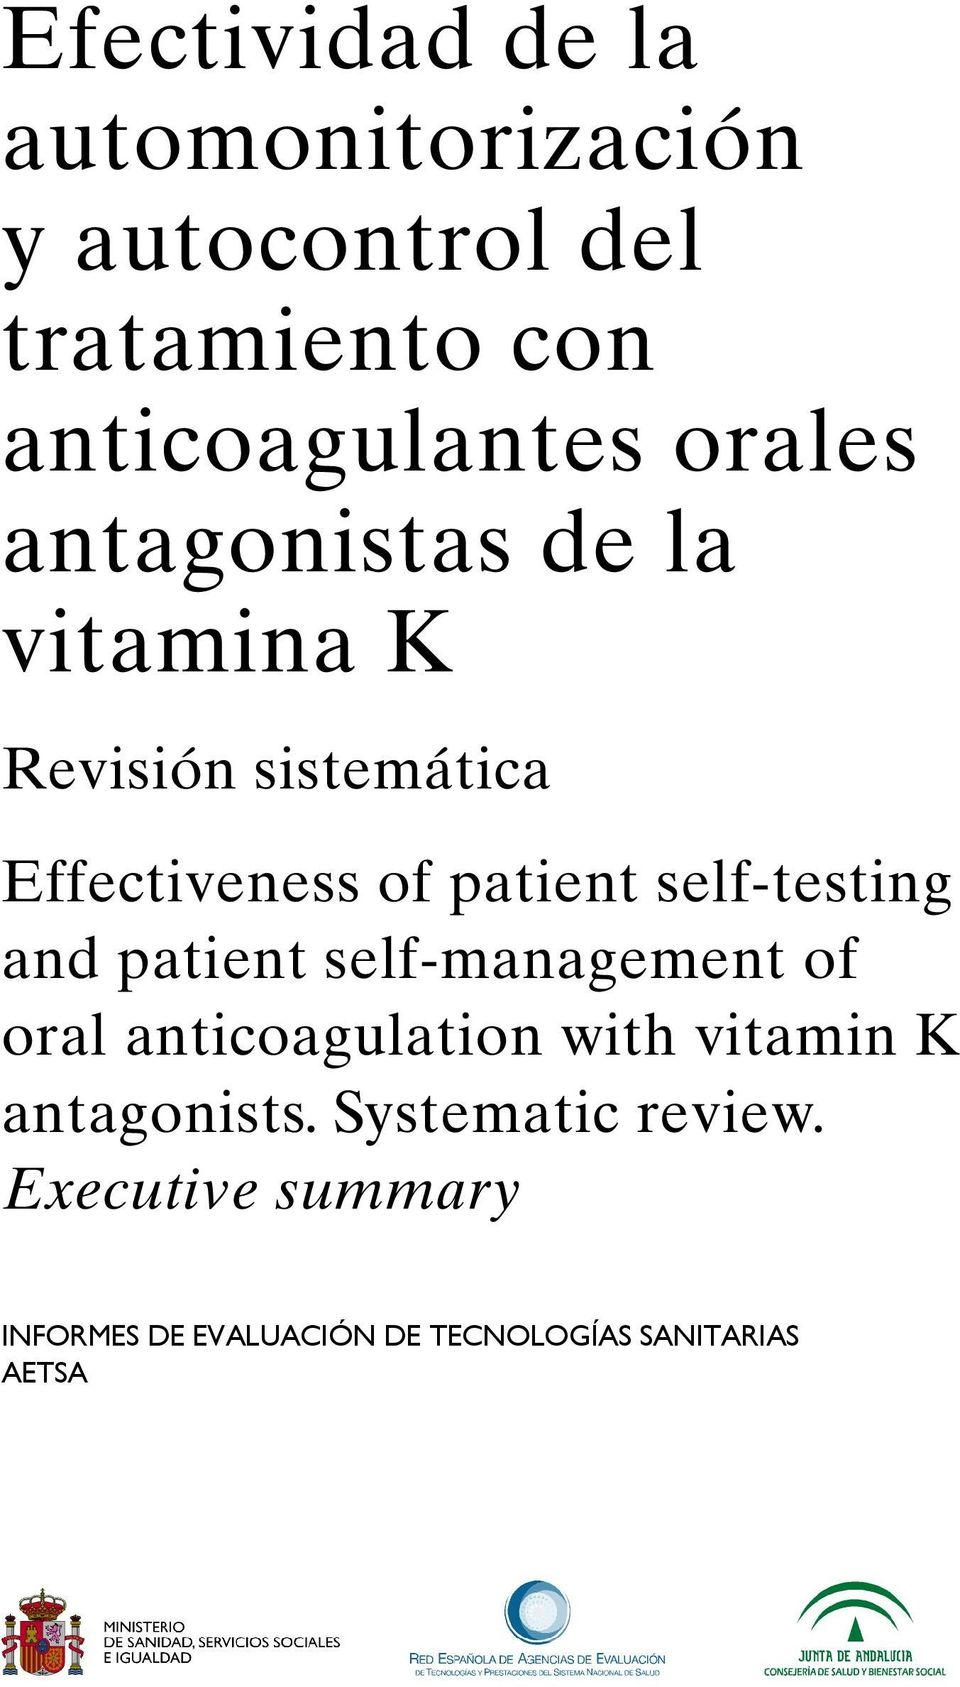 self-testing and patient self-management of oral anticoagulation with vitamin K